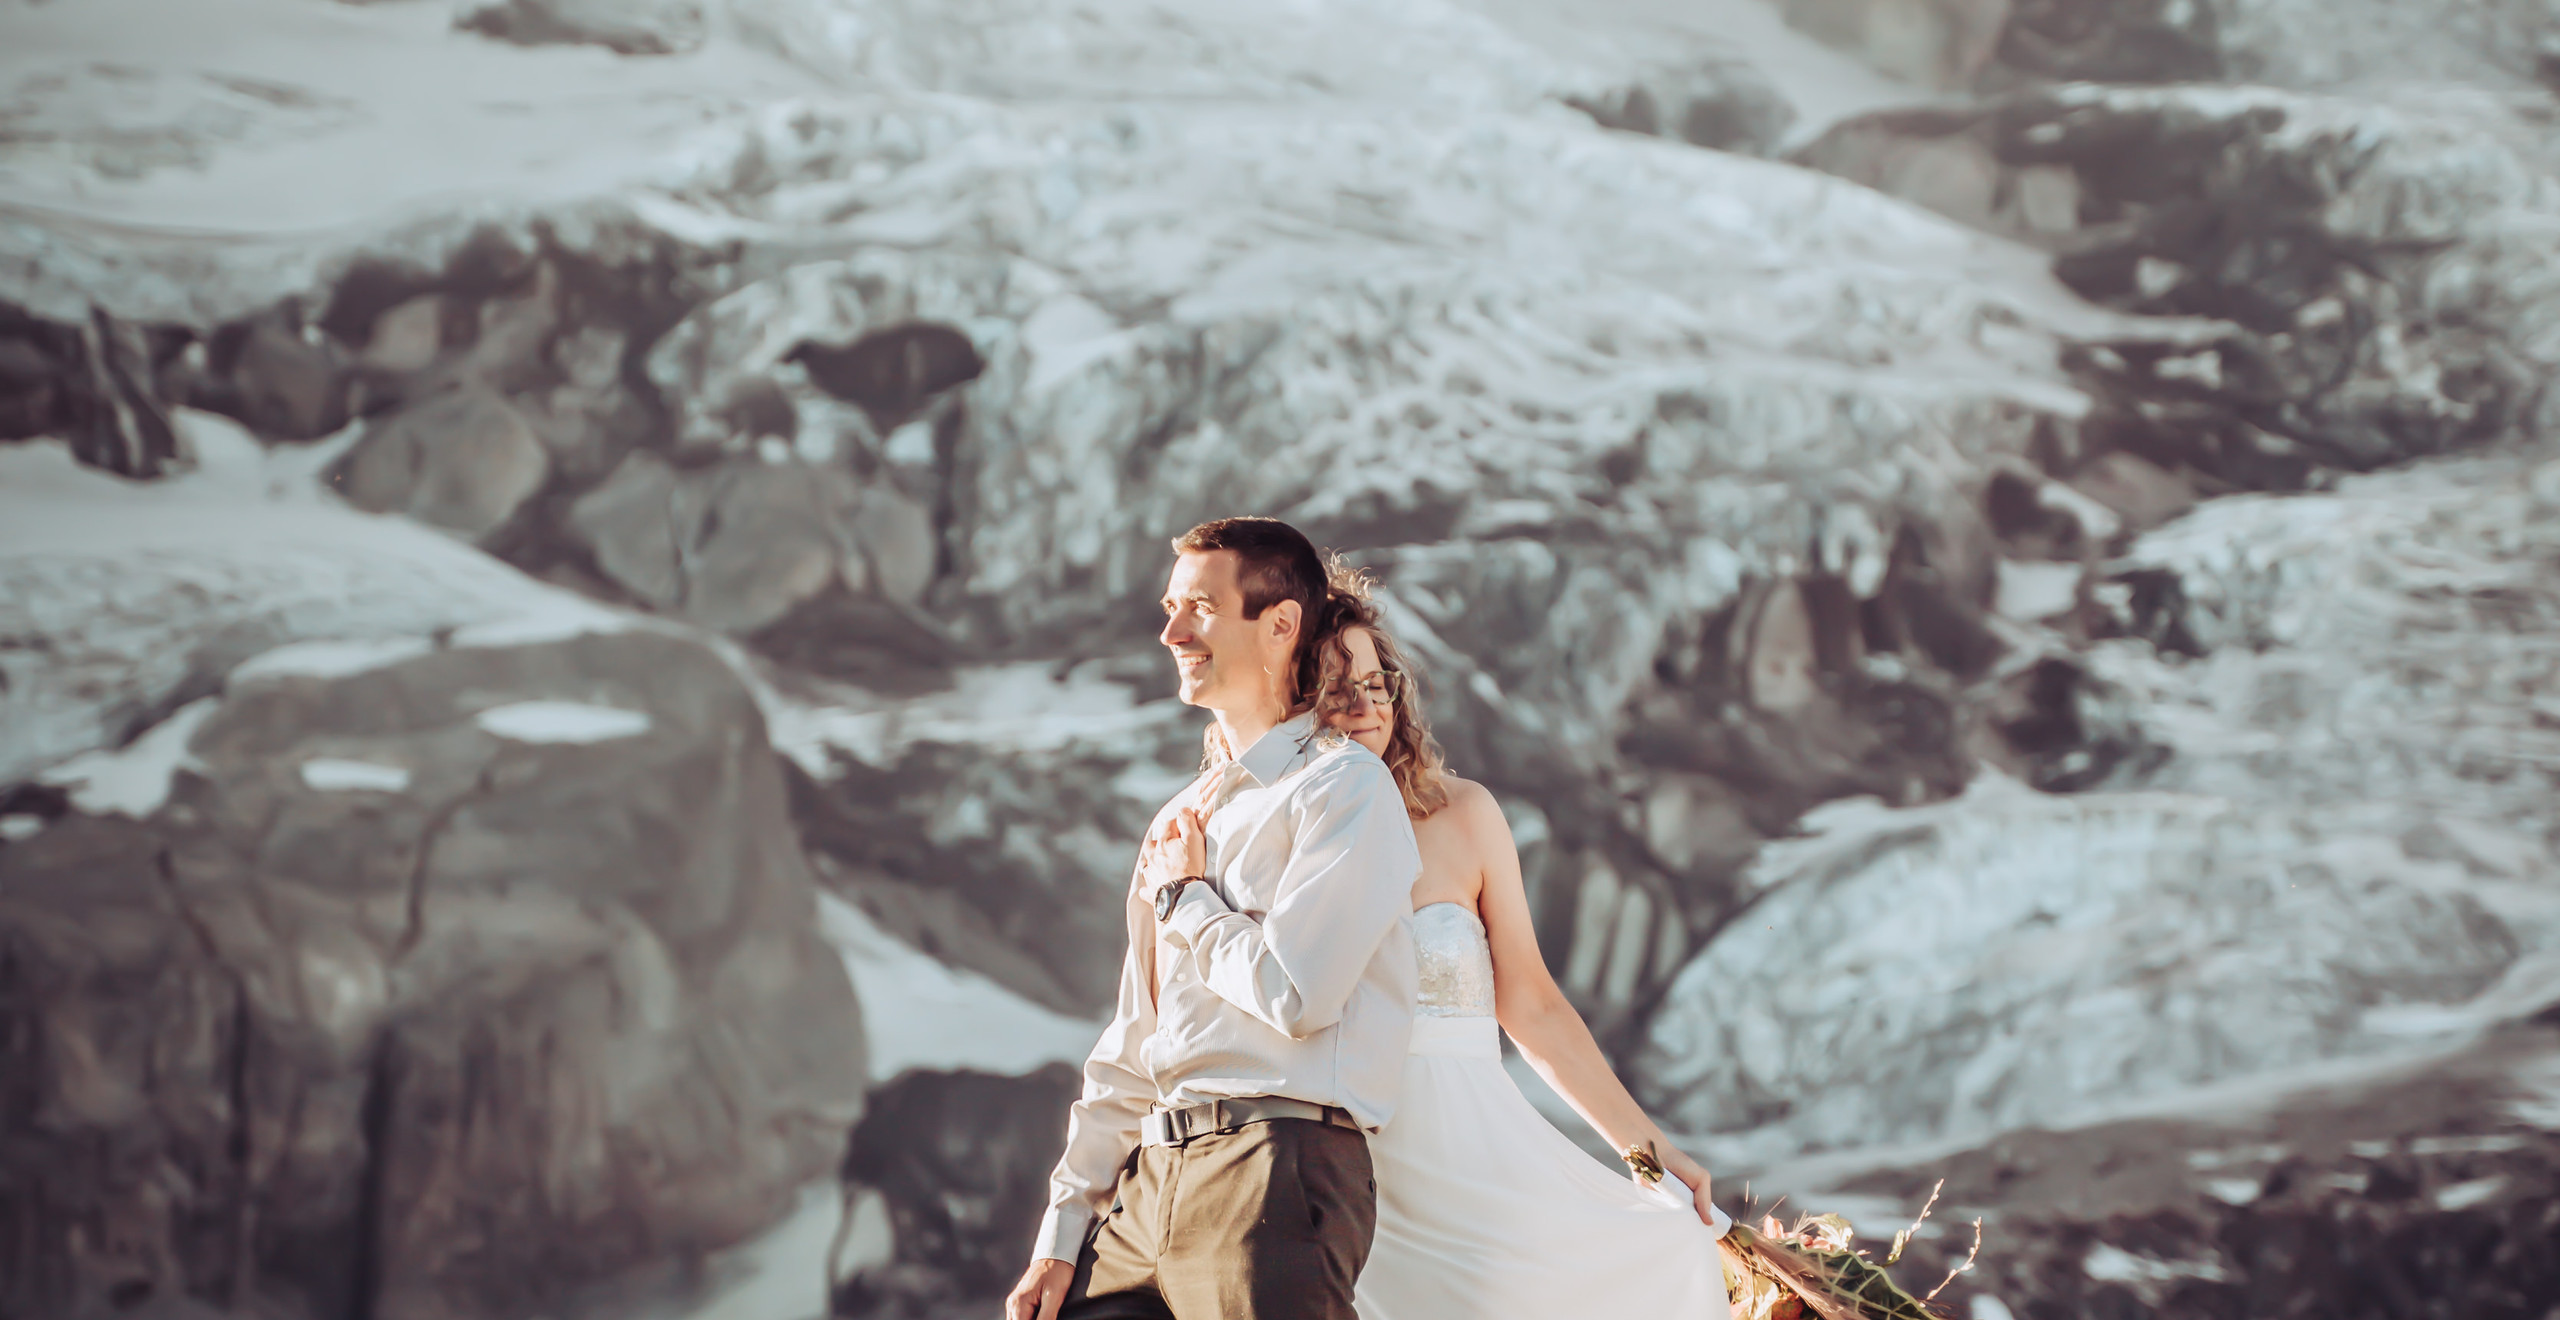 Bride holding the groom from behind looking out into the sunset with hiking boots on and Mt. Rainier in the background